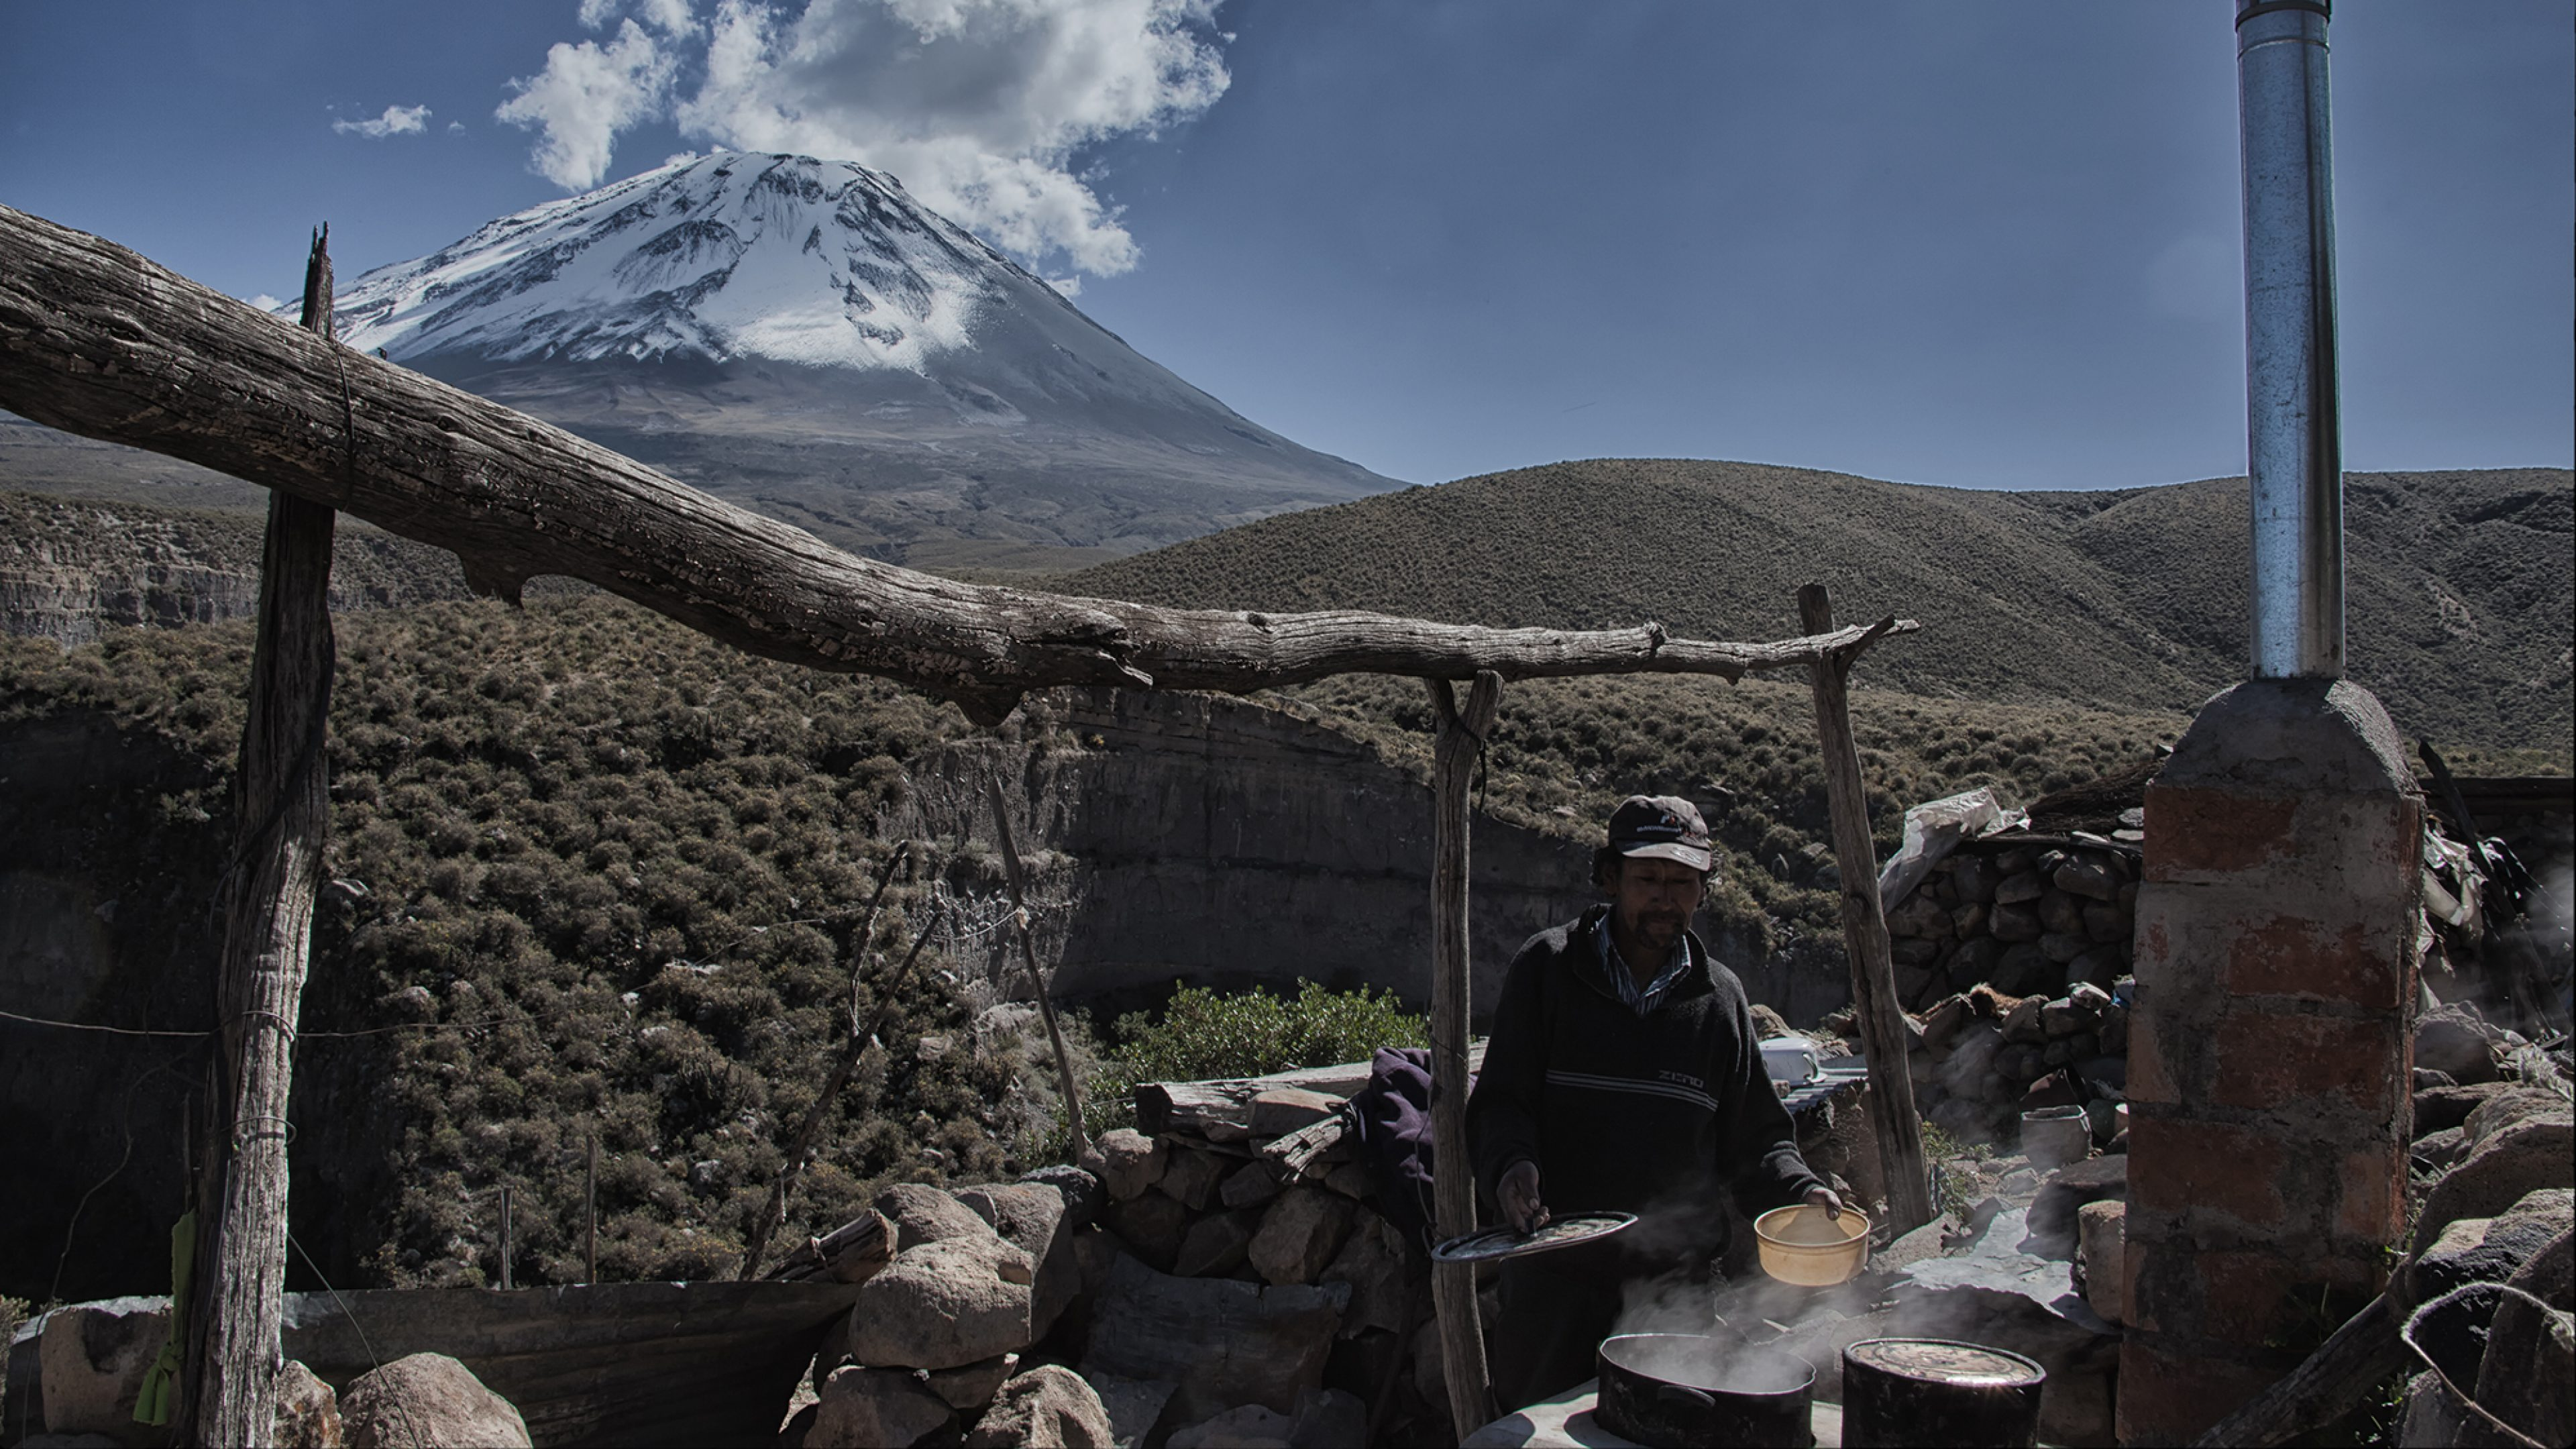 The Qori Q'oncha cookstoves project is working across Peru including the Andean Altiplano